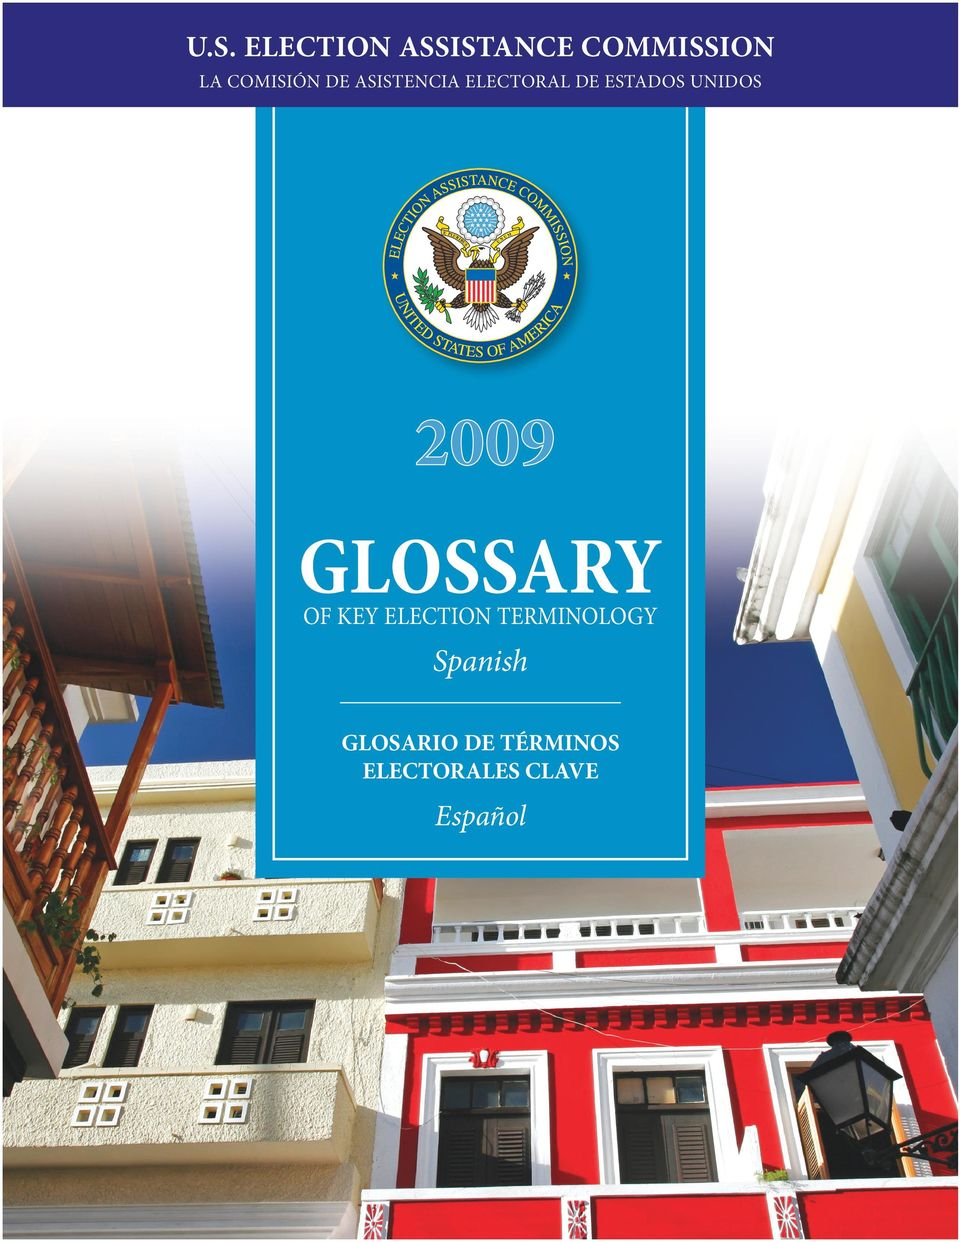 Unidos 2009 Glossary of key election